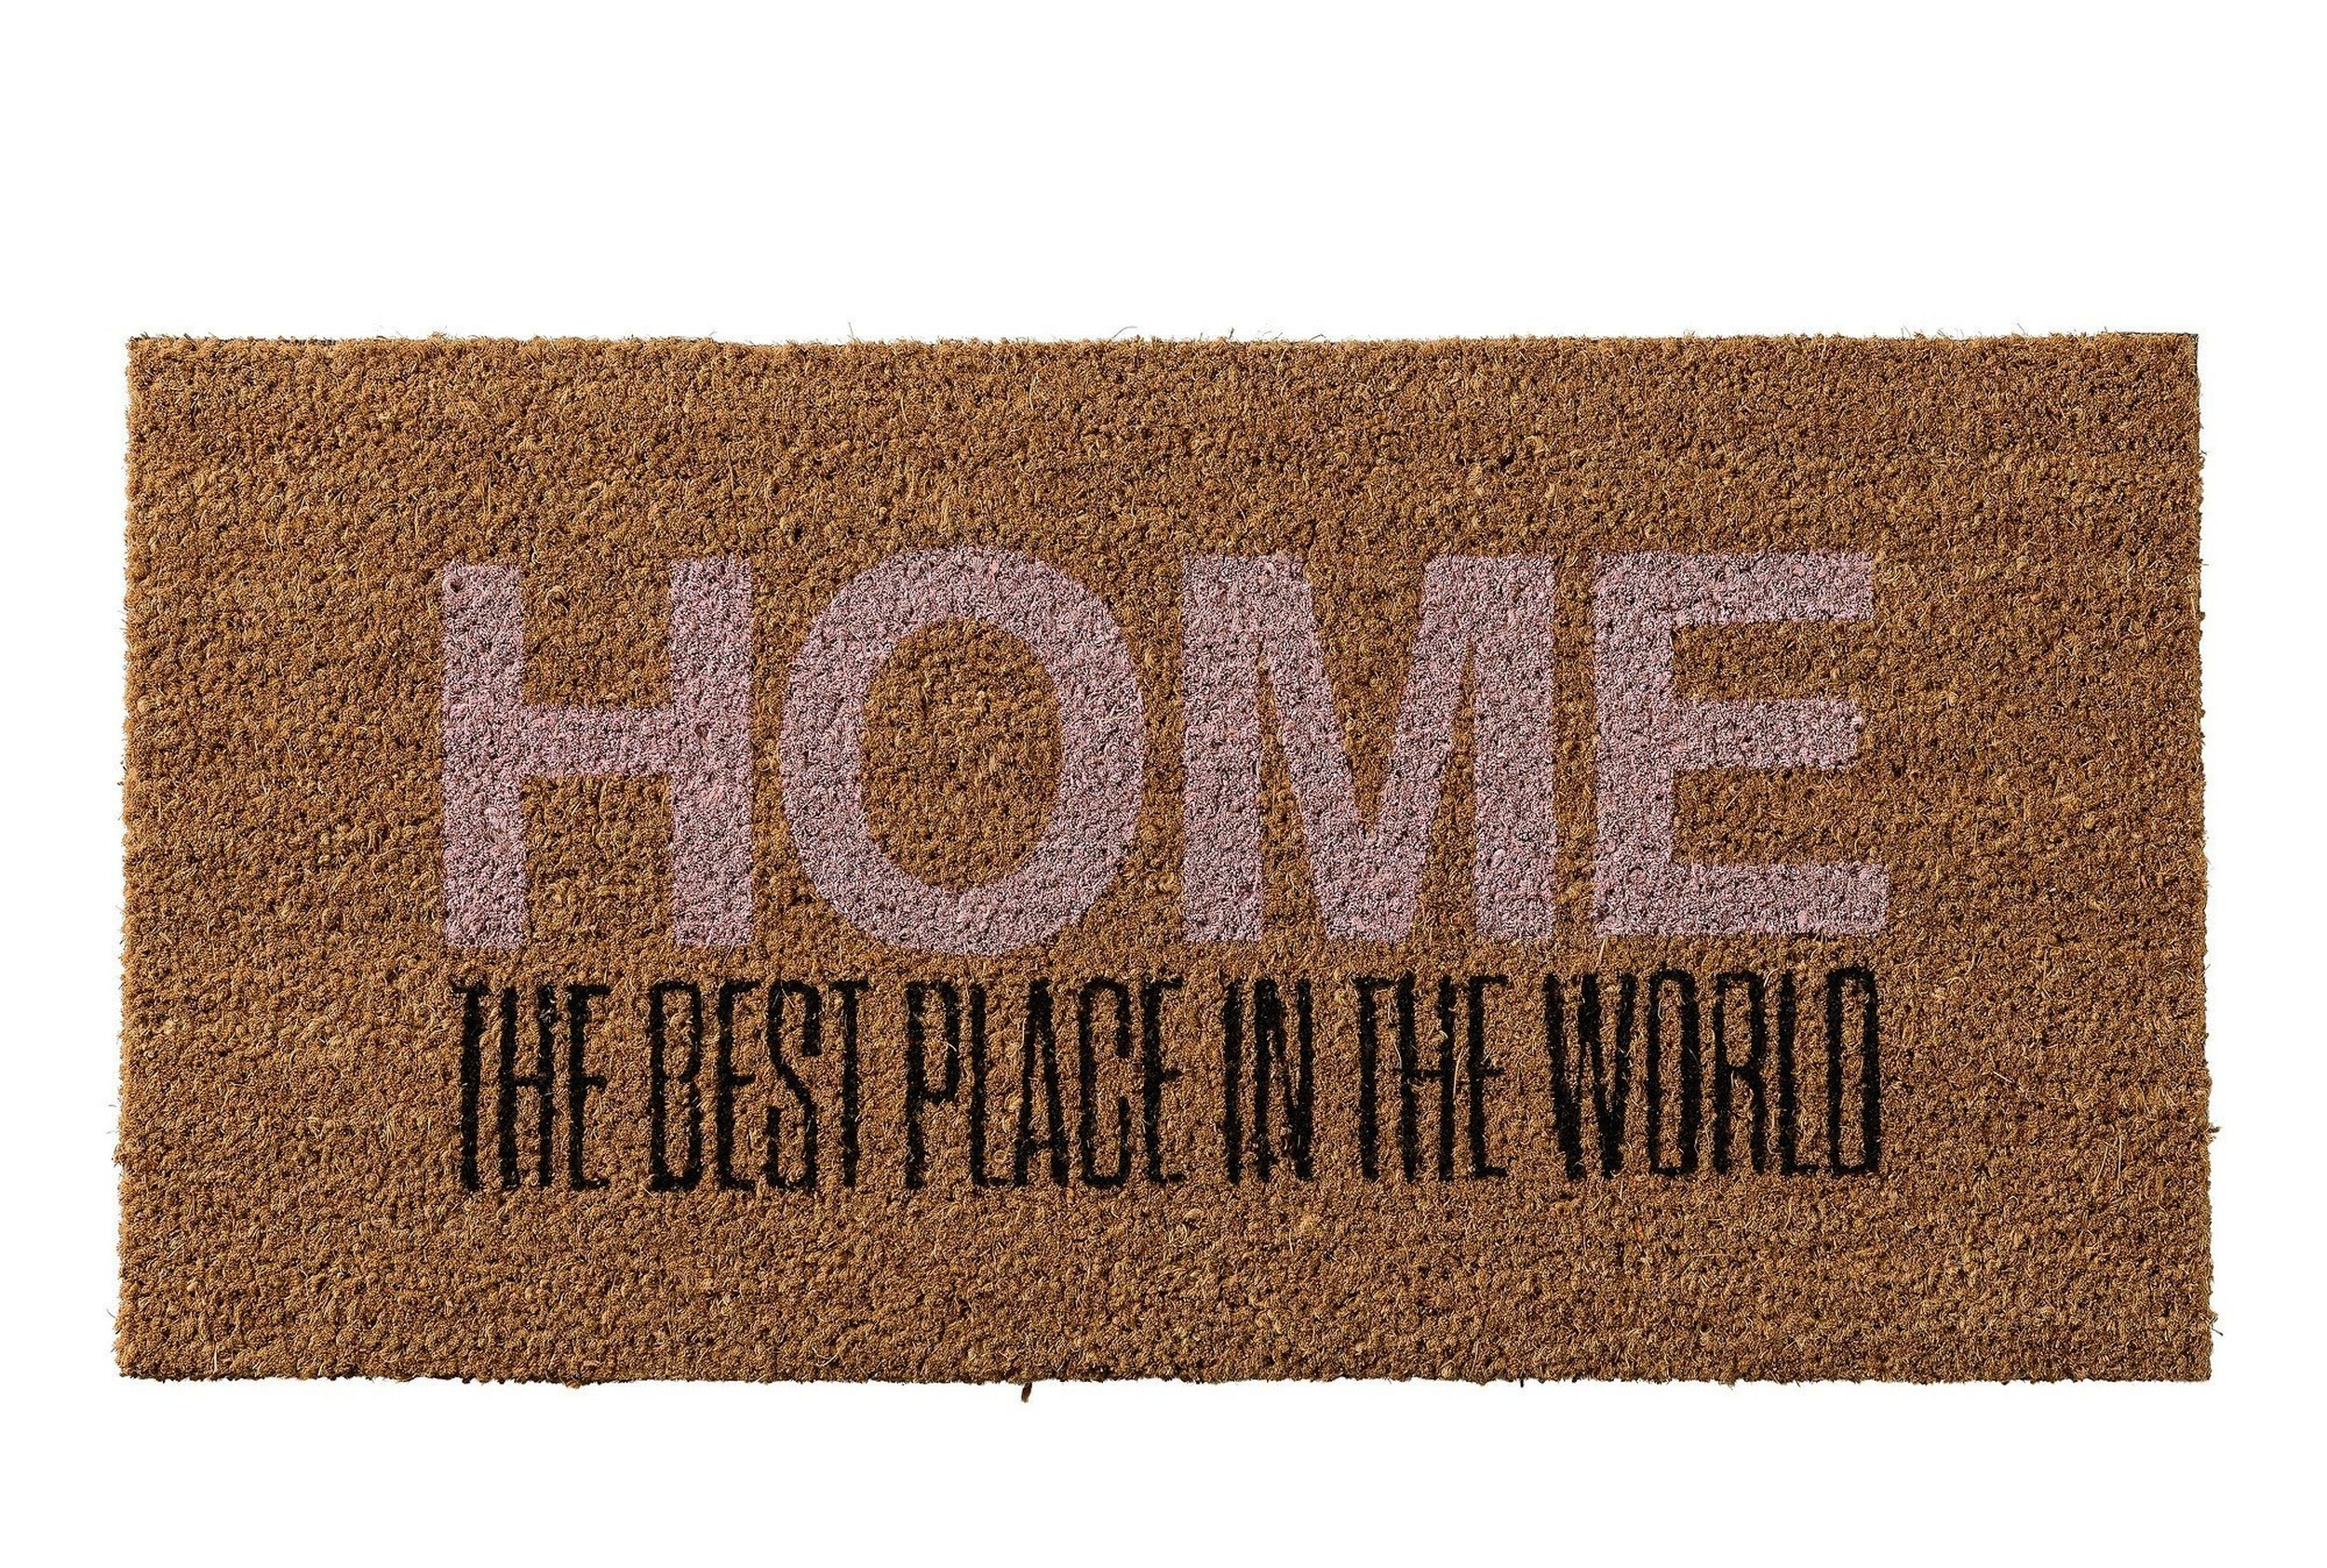 home is the best place in the world essay